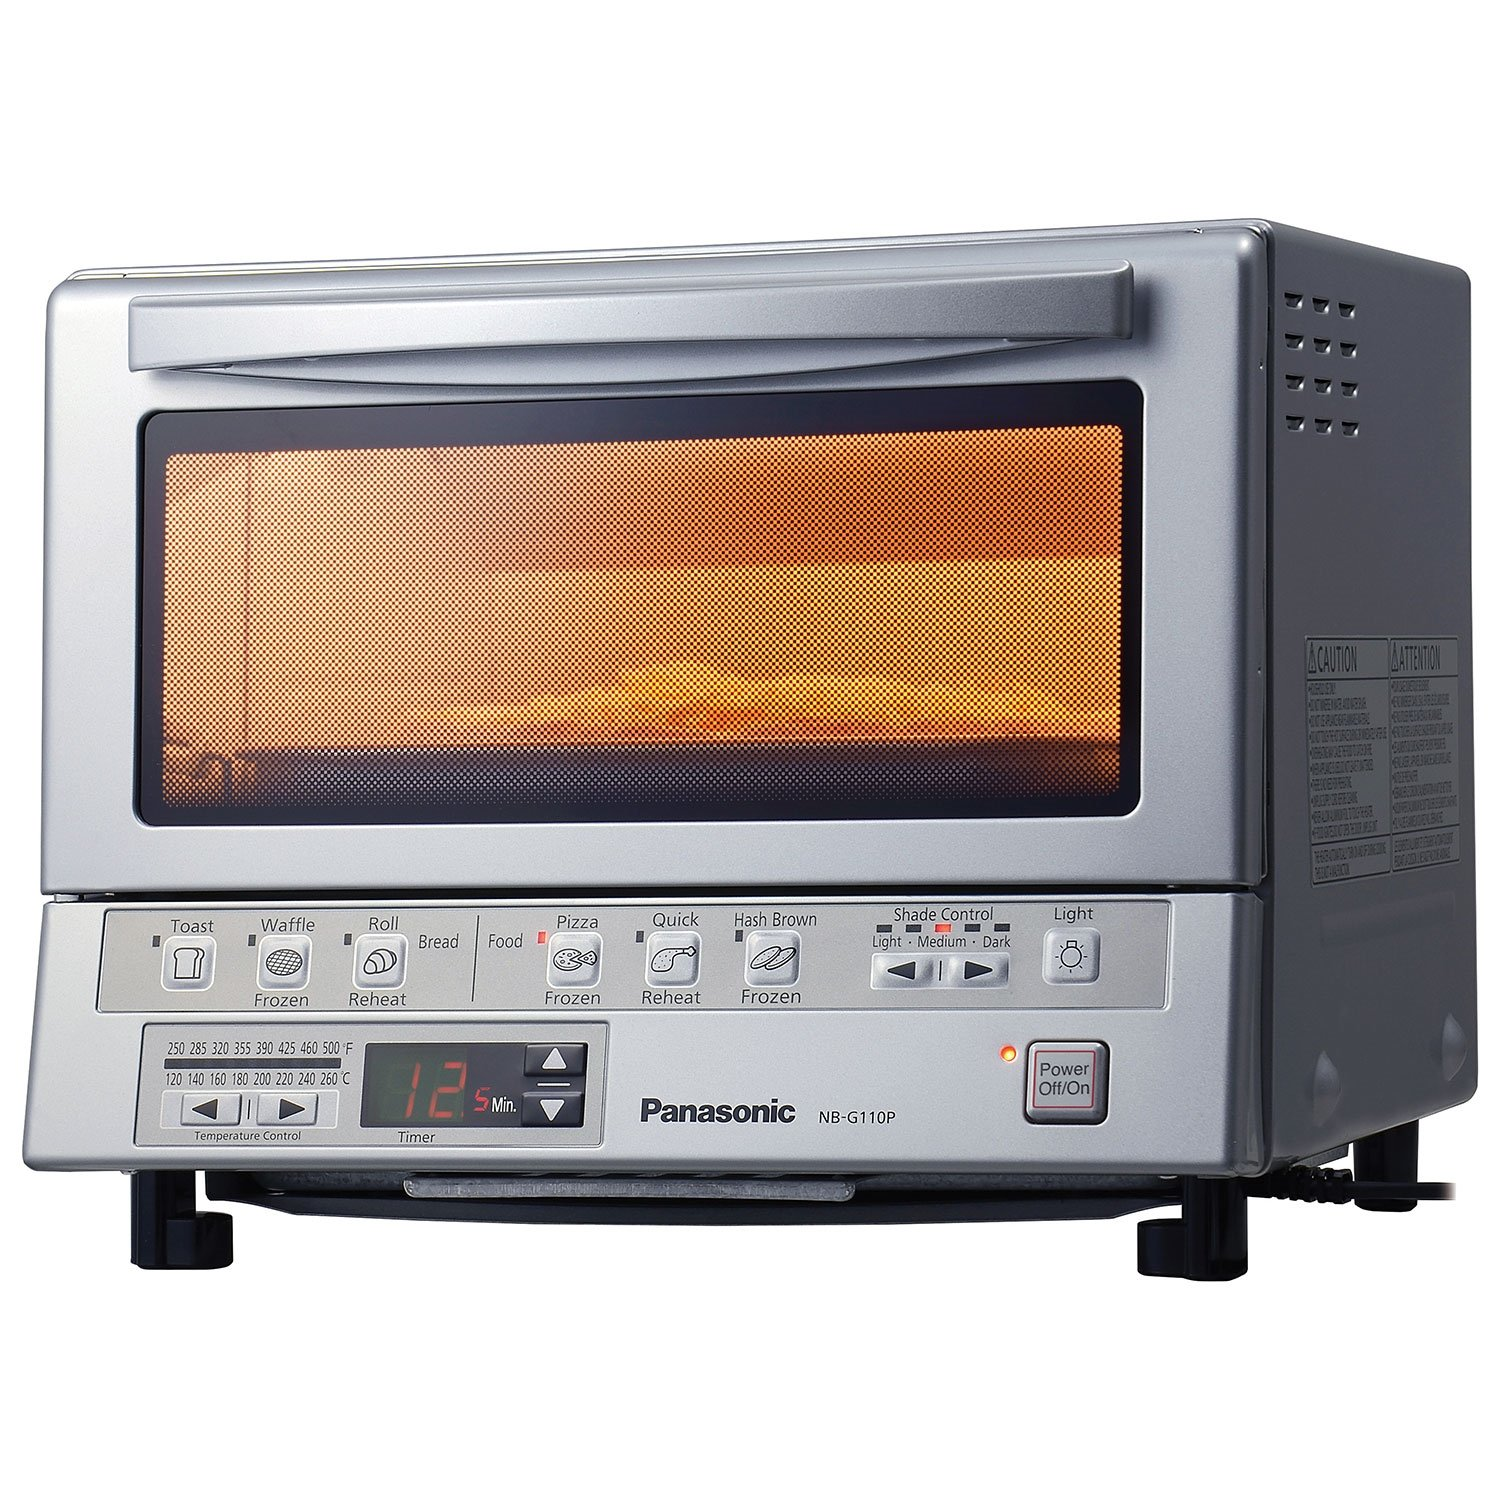 Panasonic FlashXpress Double Infrared Toaster Oven (NBG110P) - Silver